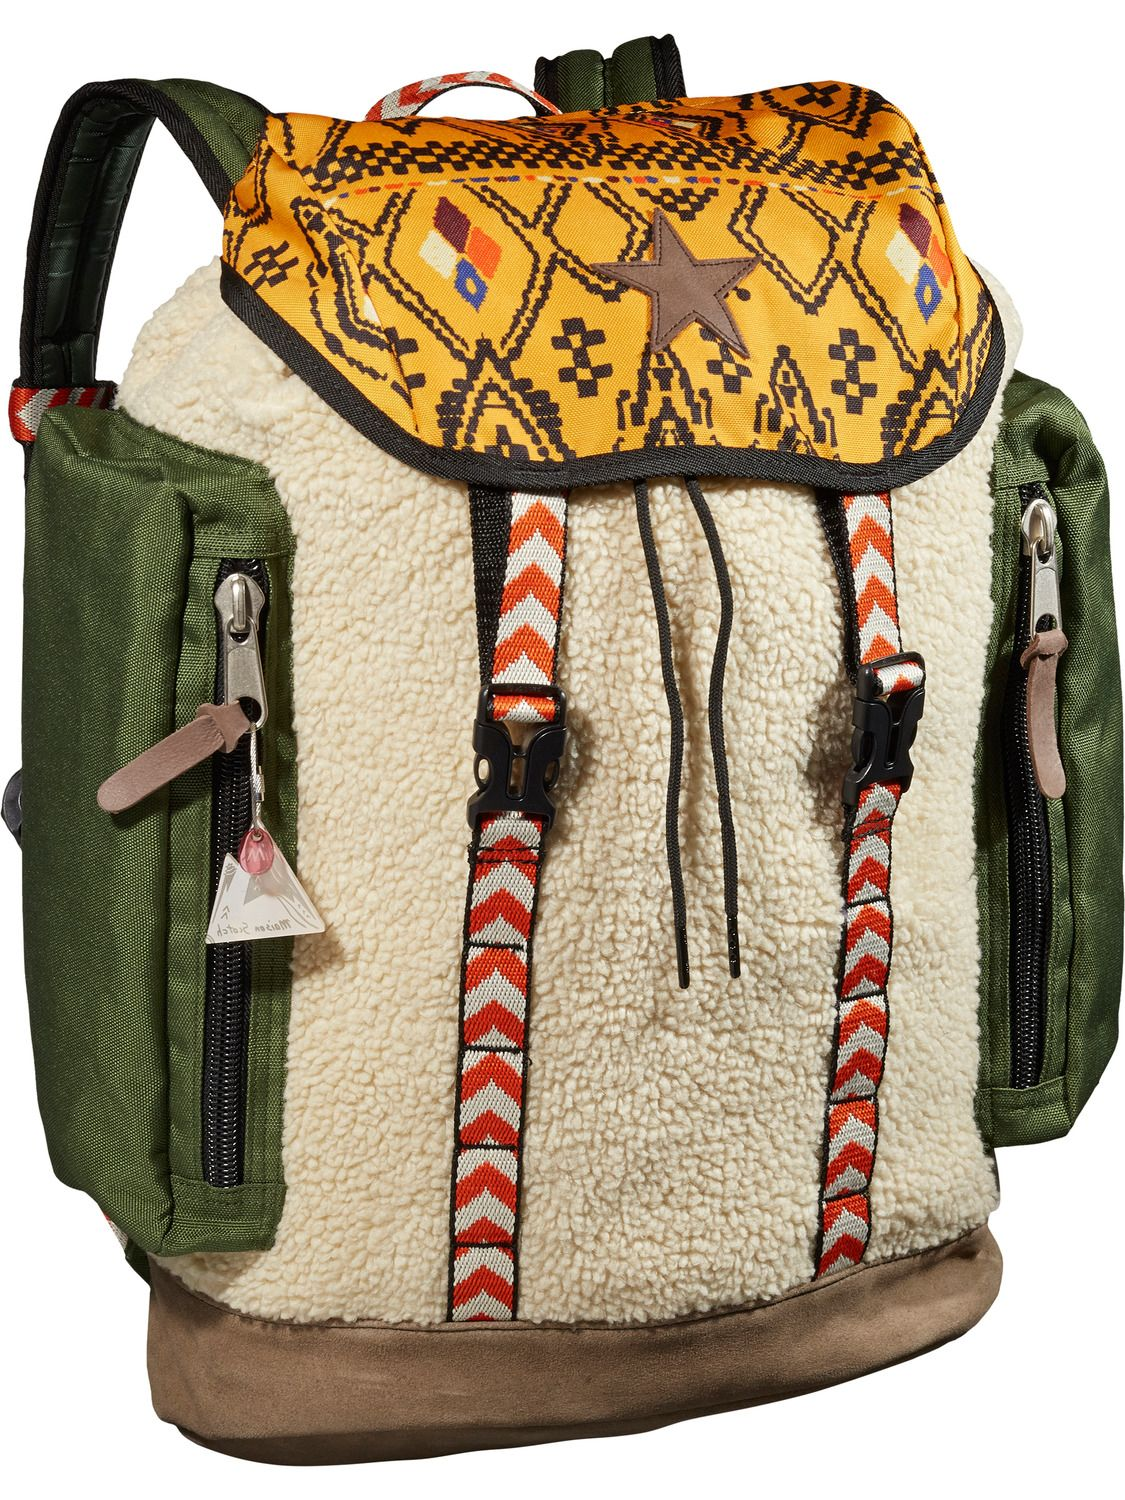 Mountaineer s Backpack by Scotch and Soda. WANT!!   Pact   Pinterest 4f48a25629